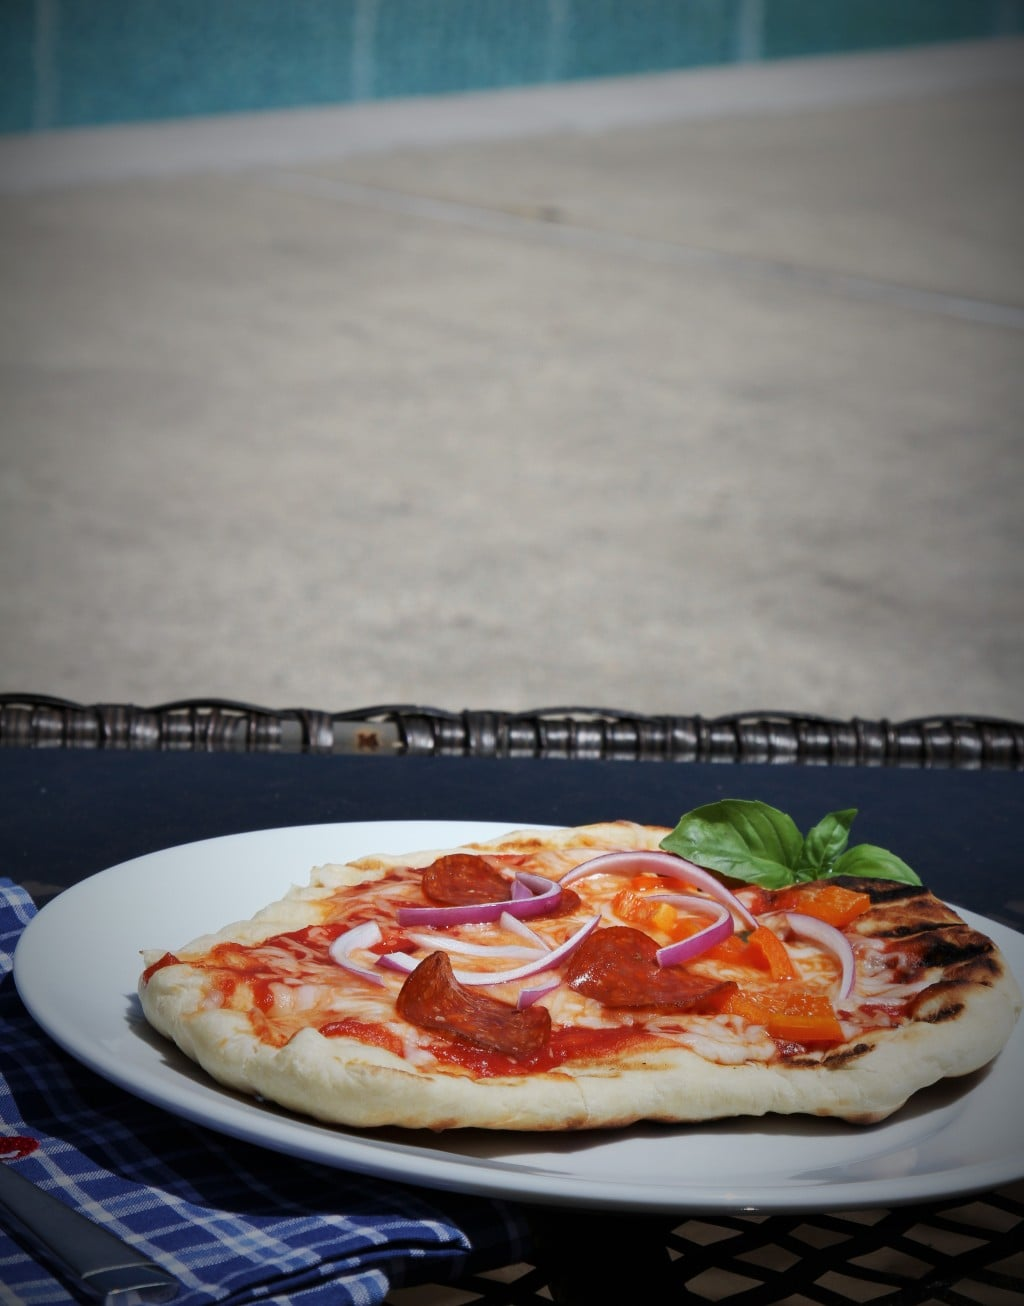 grilled pizza on a white plate by a pool